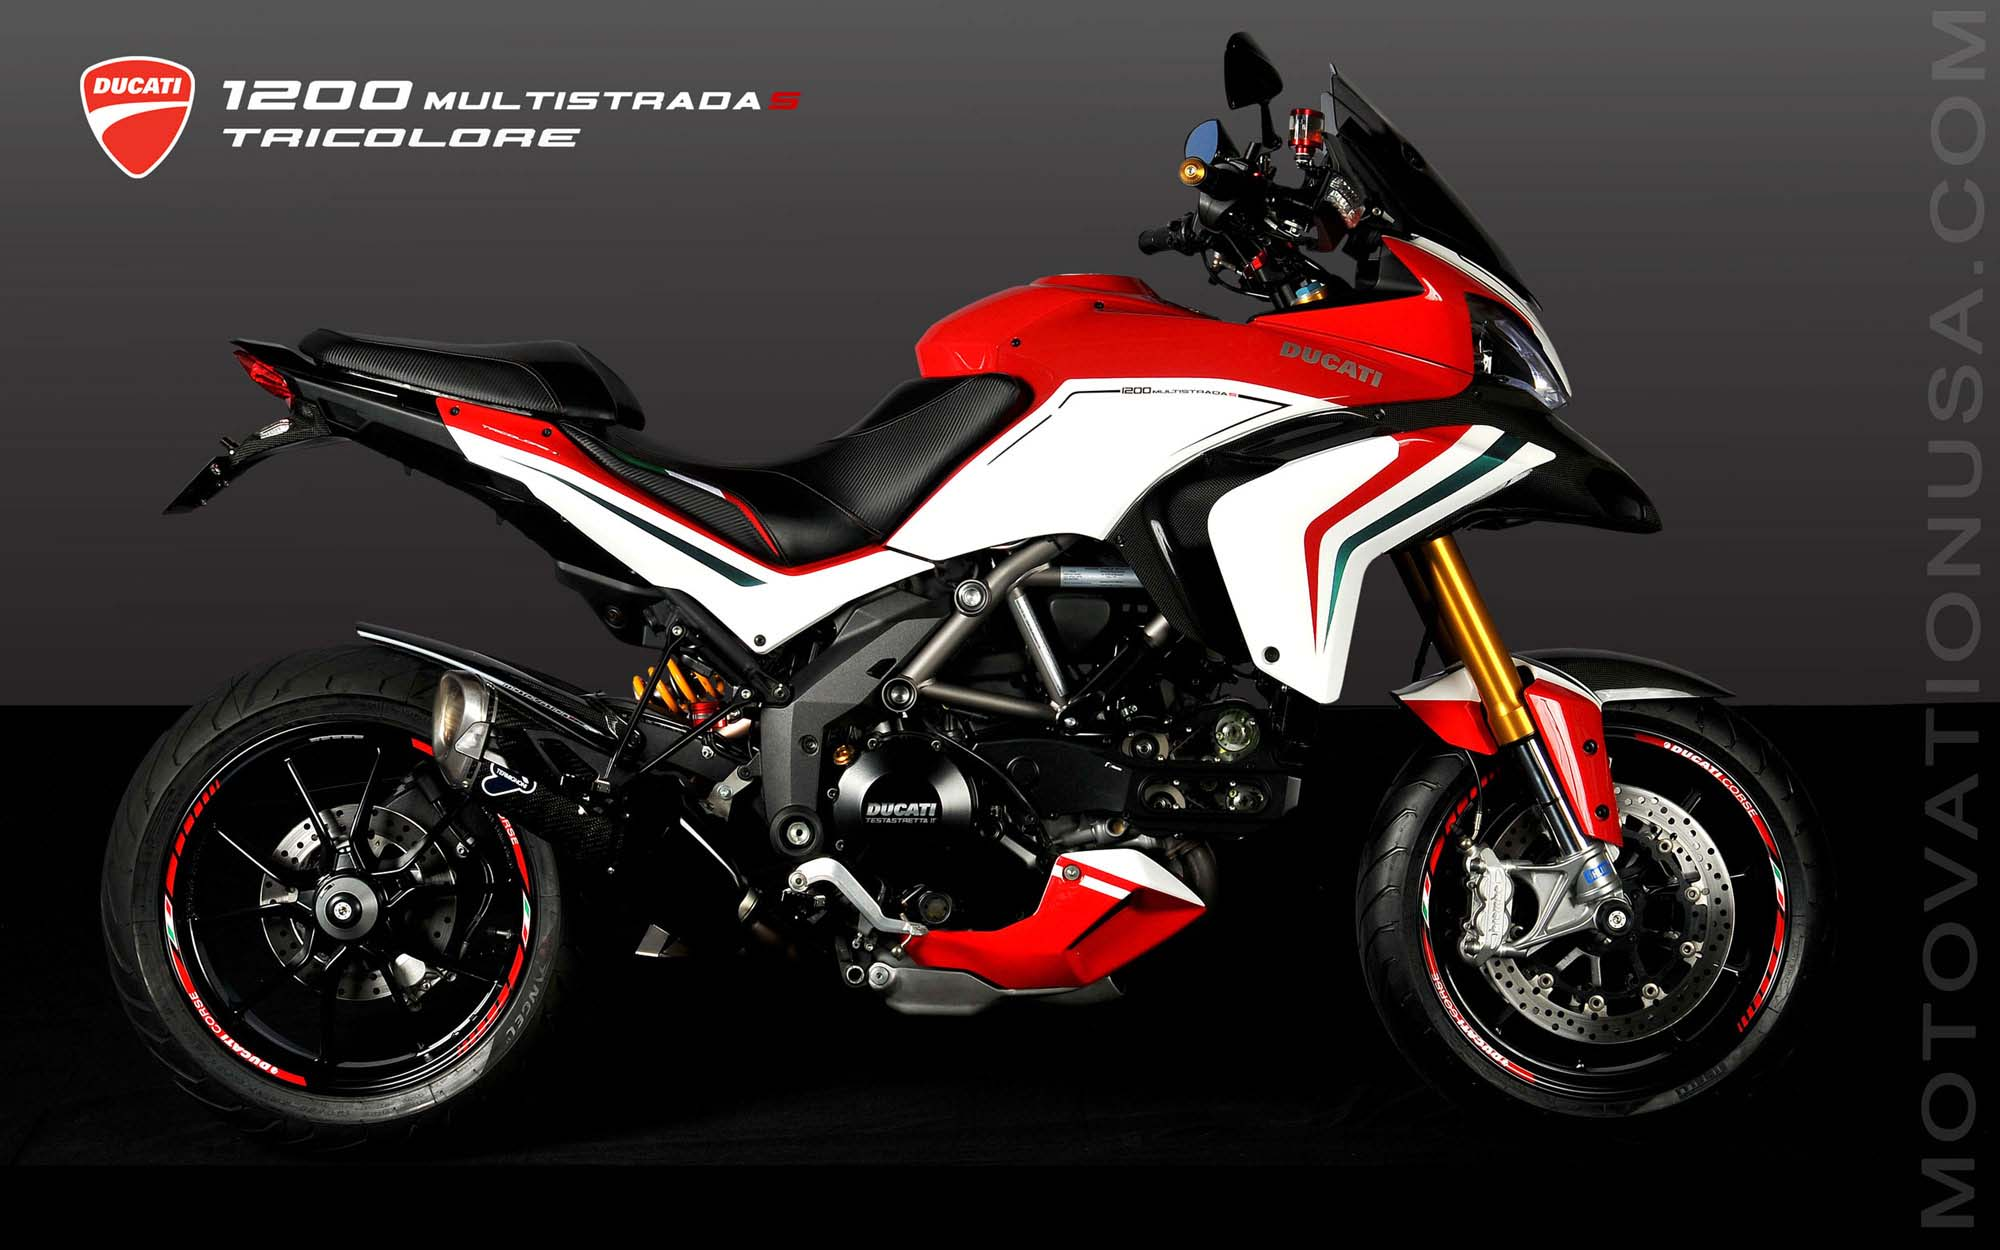 ducati multistrada 1200 s tricolore by motovation. Black Bedroom Furniture Sets. Home Design Ideas